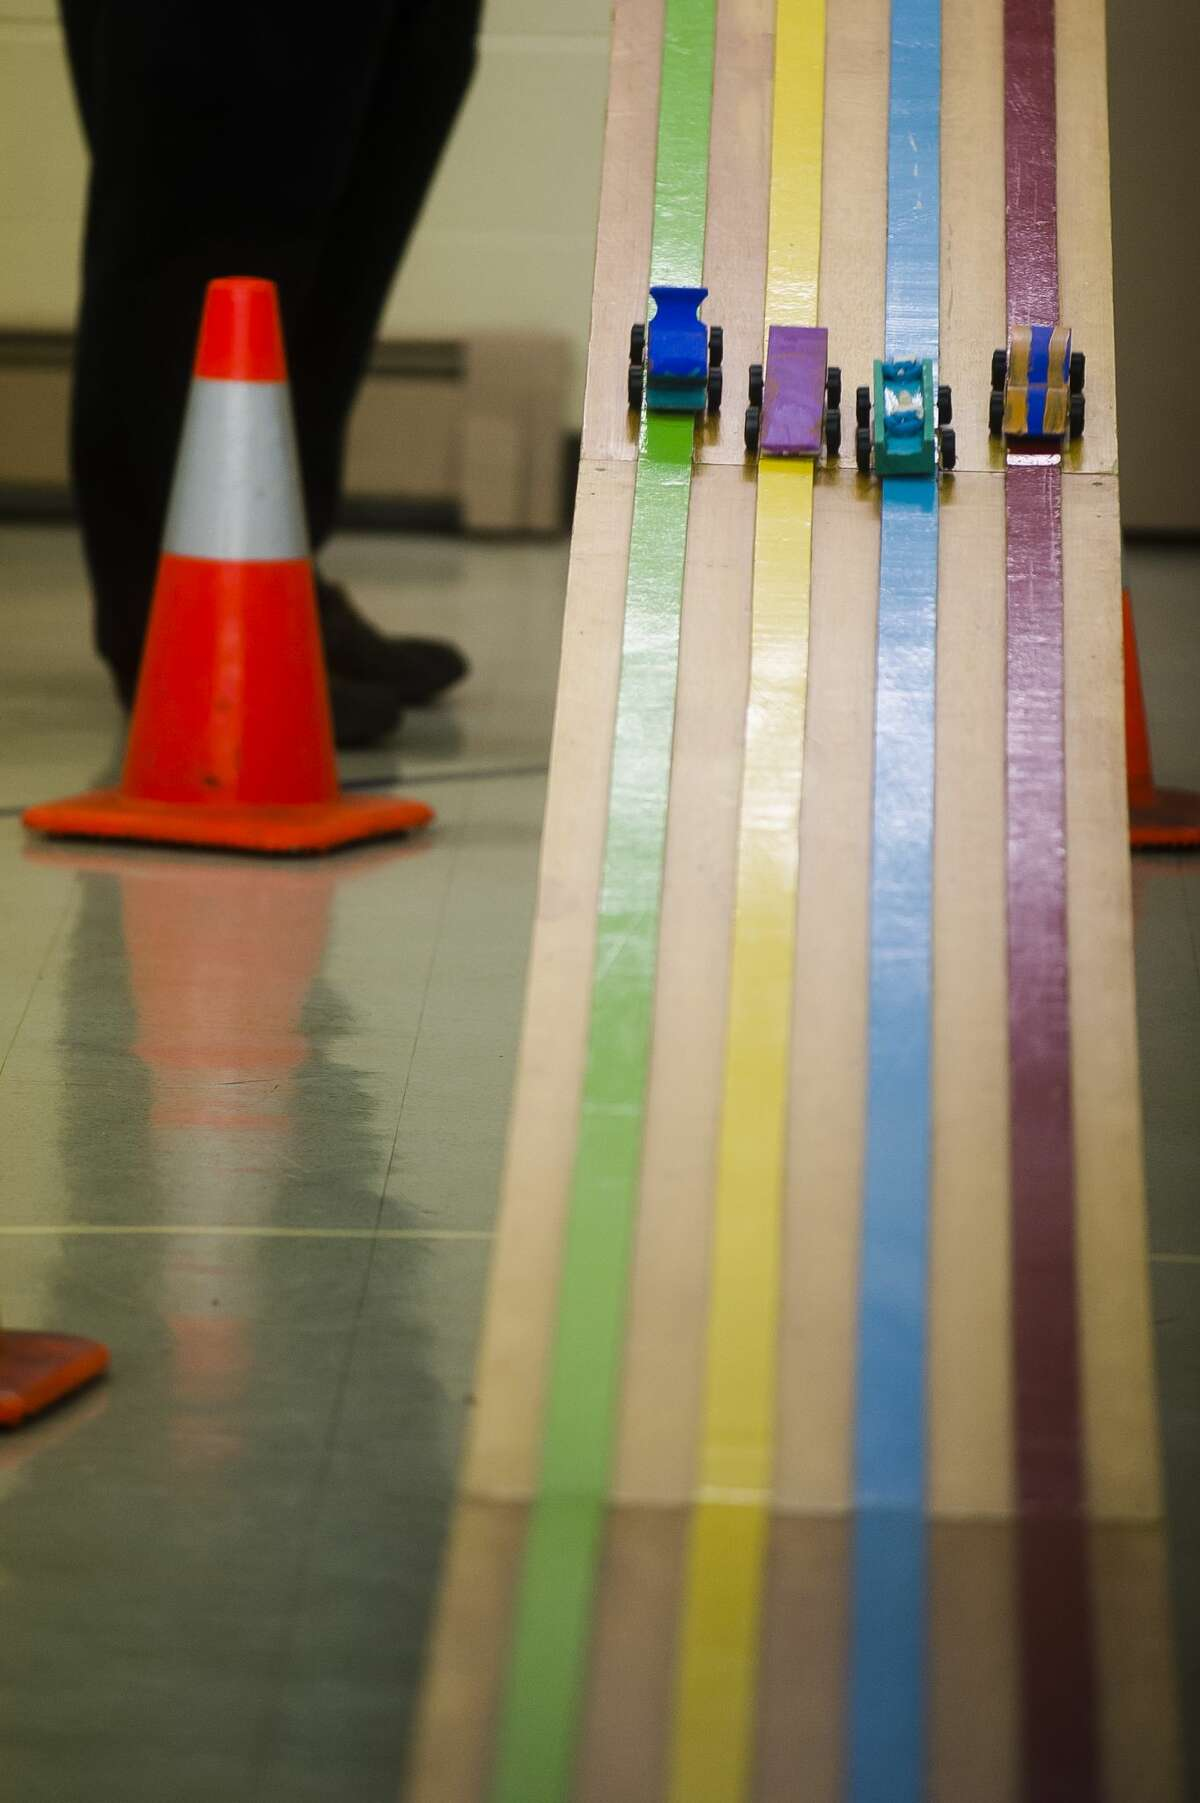 Cars race down the track during a pinewood derby on Wednesday, Feb. 21, 2018 at Hope Baptist Church in Hope. (Katy Kildee/kkildee@mdn.net)